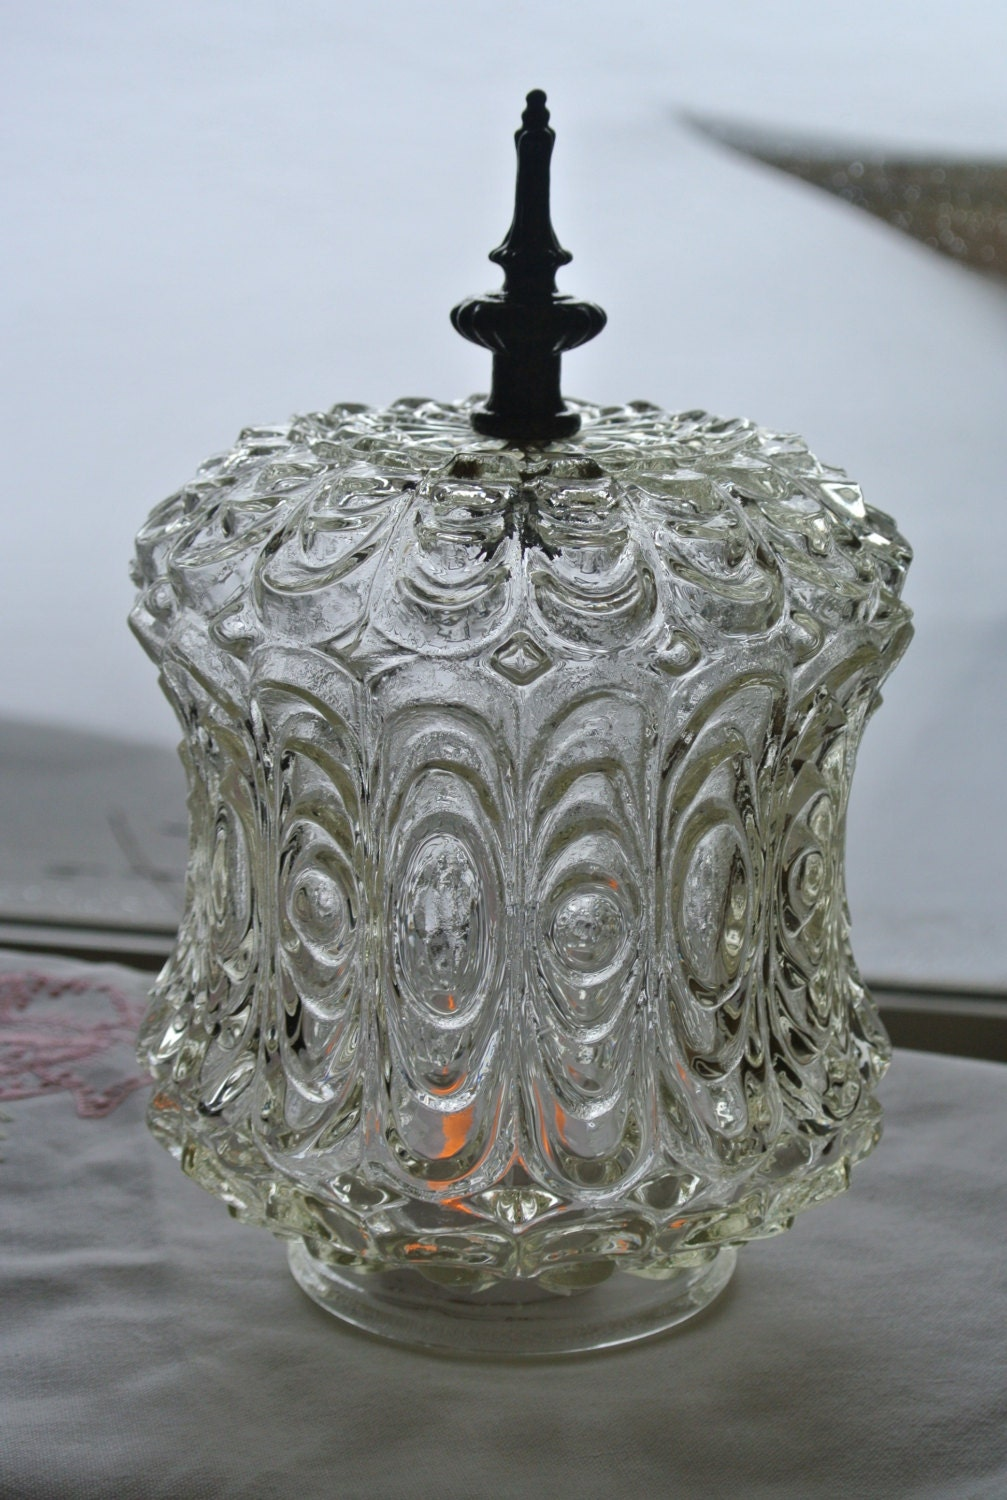 cut glass lamp shades 2 antique clear glass. Black Bedroom Furniture Sets. Home Design Ideas